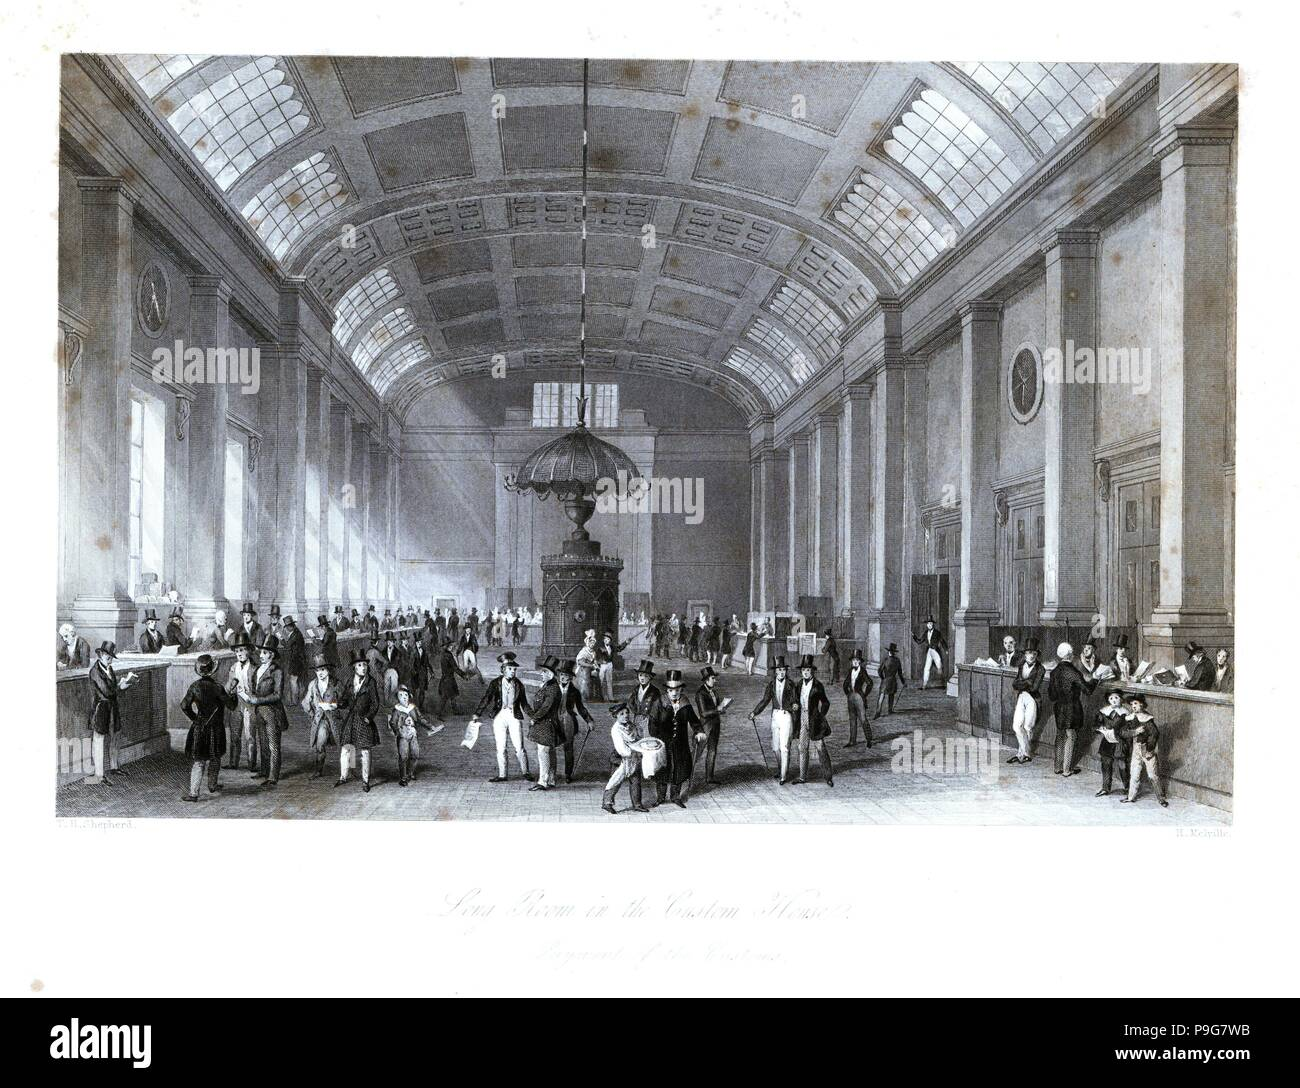 Payment of customs in the Long Room at Custom House. Built in 1813 by the architect David Laing, it collapsed in 1825. Steel engraving by Henry Melville after an illustration by Thomas Hosmer Shepherd from London Interiors, Their Costumes and Ceremonies, Joshua Mead, London, 1841. - Stock Image